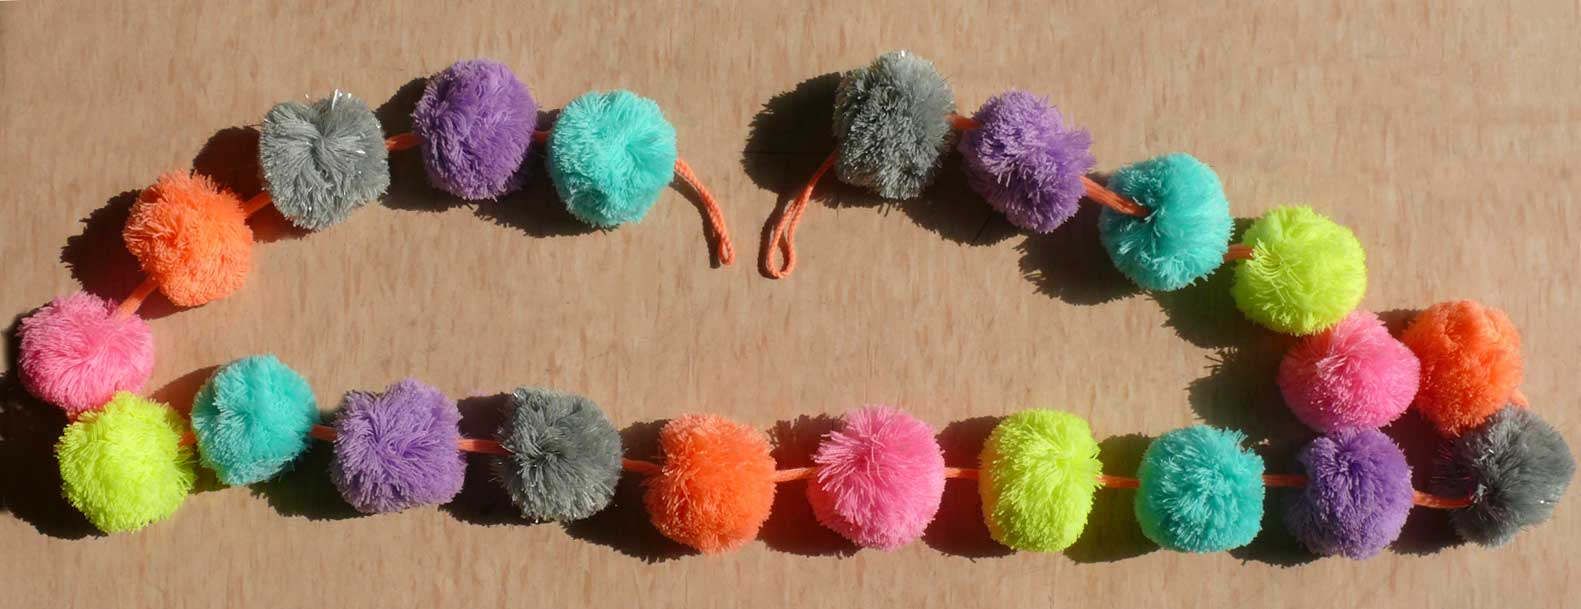 Multi Color Pom Pom Garland made by hand in wool, are for decorating and hanging